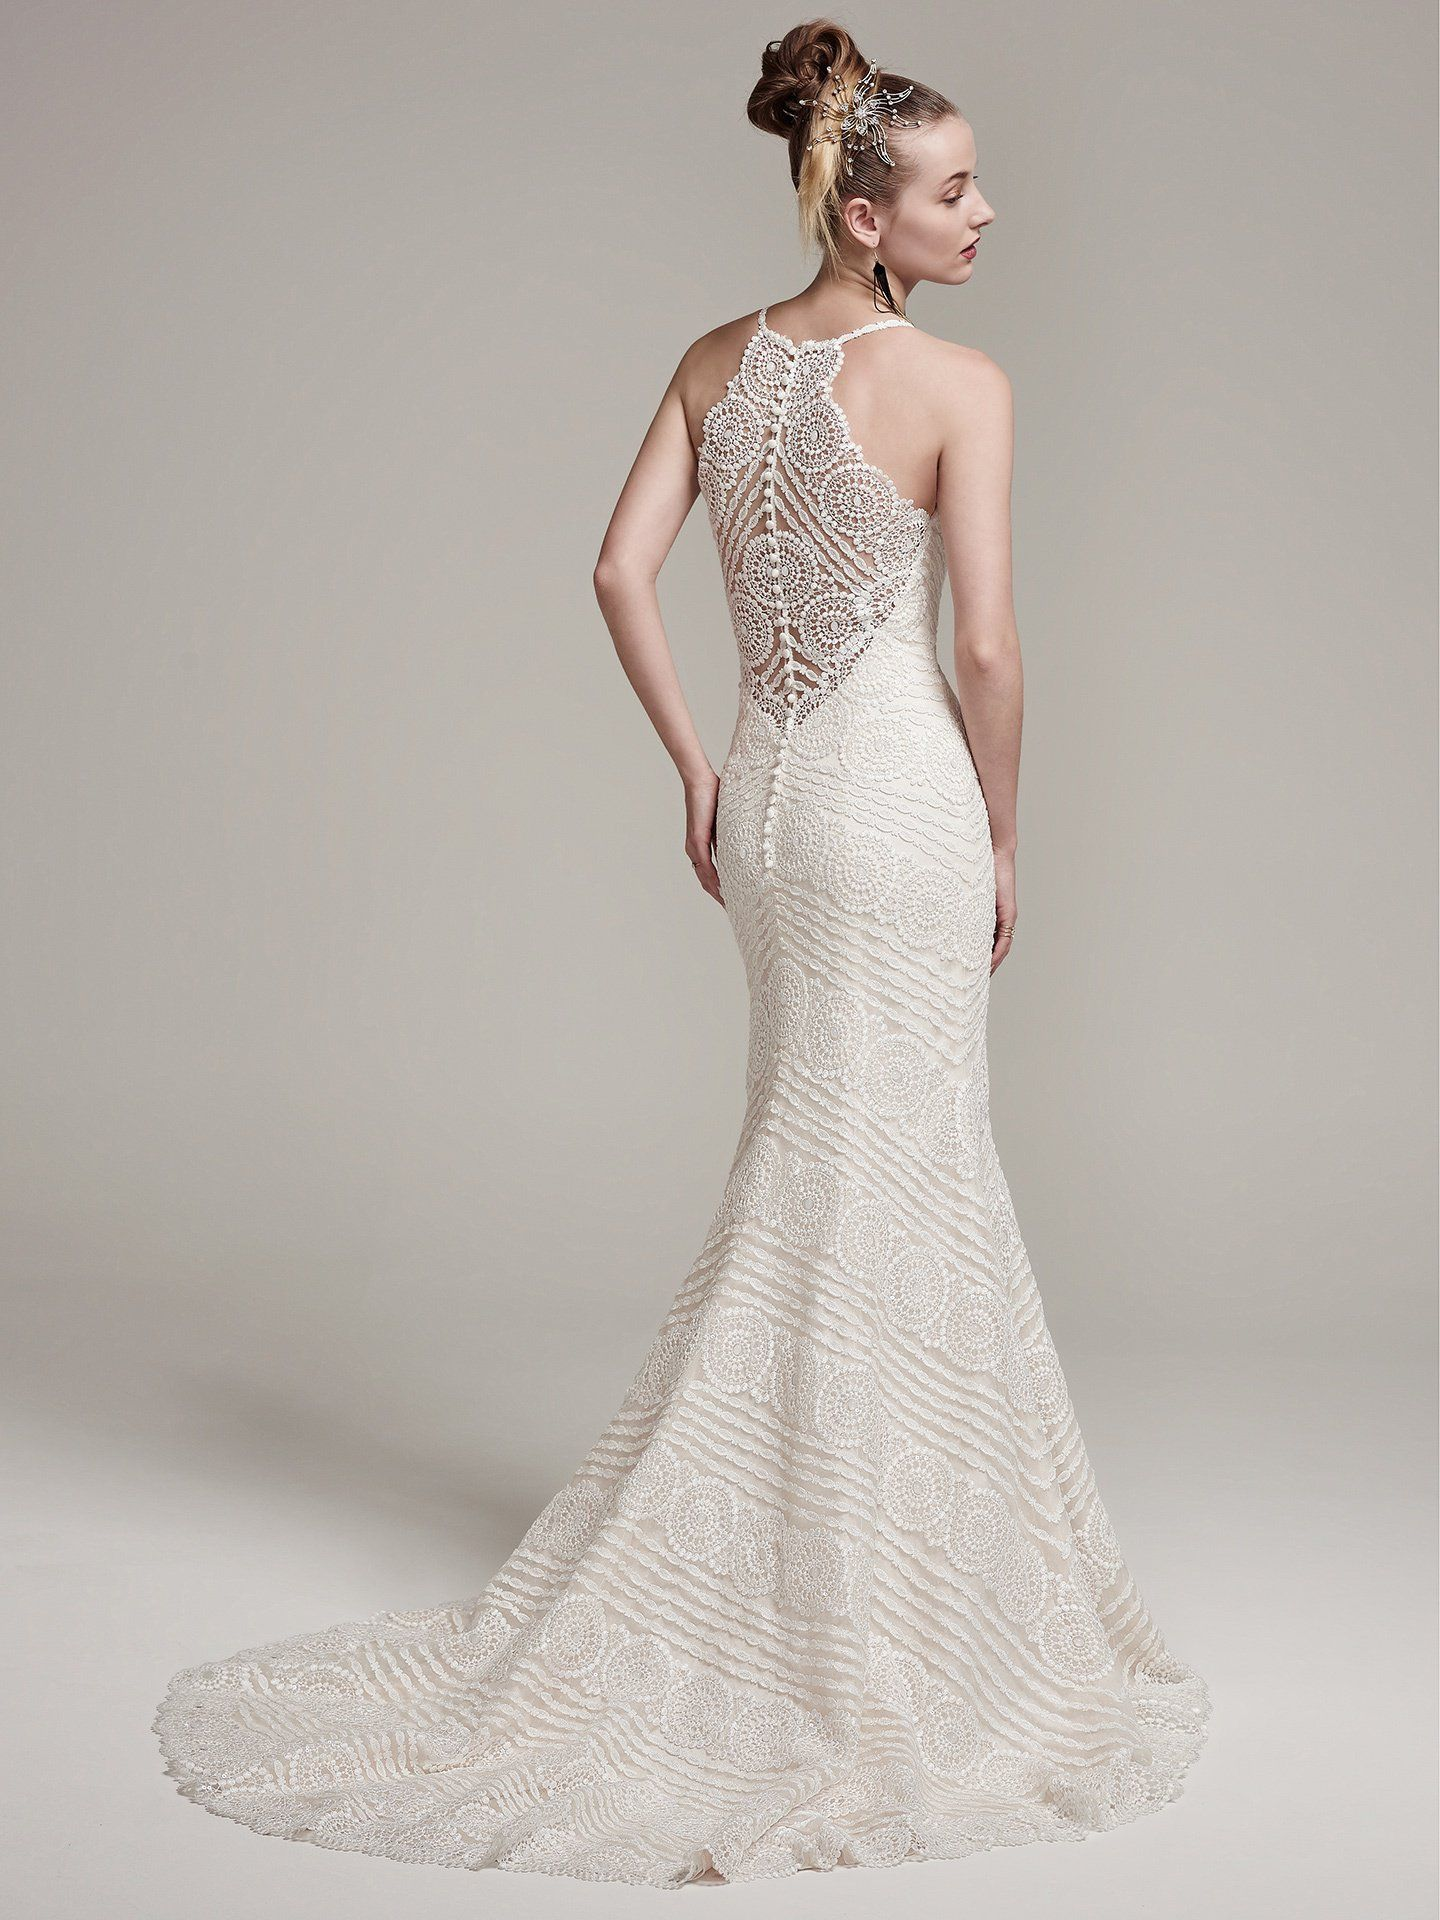 Awesome wedding dresses in springfield mo check more at http awesome wedding dresses in springfield mo check more at httpsvesty ombrellifo Image collections